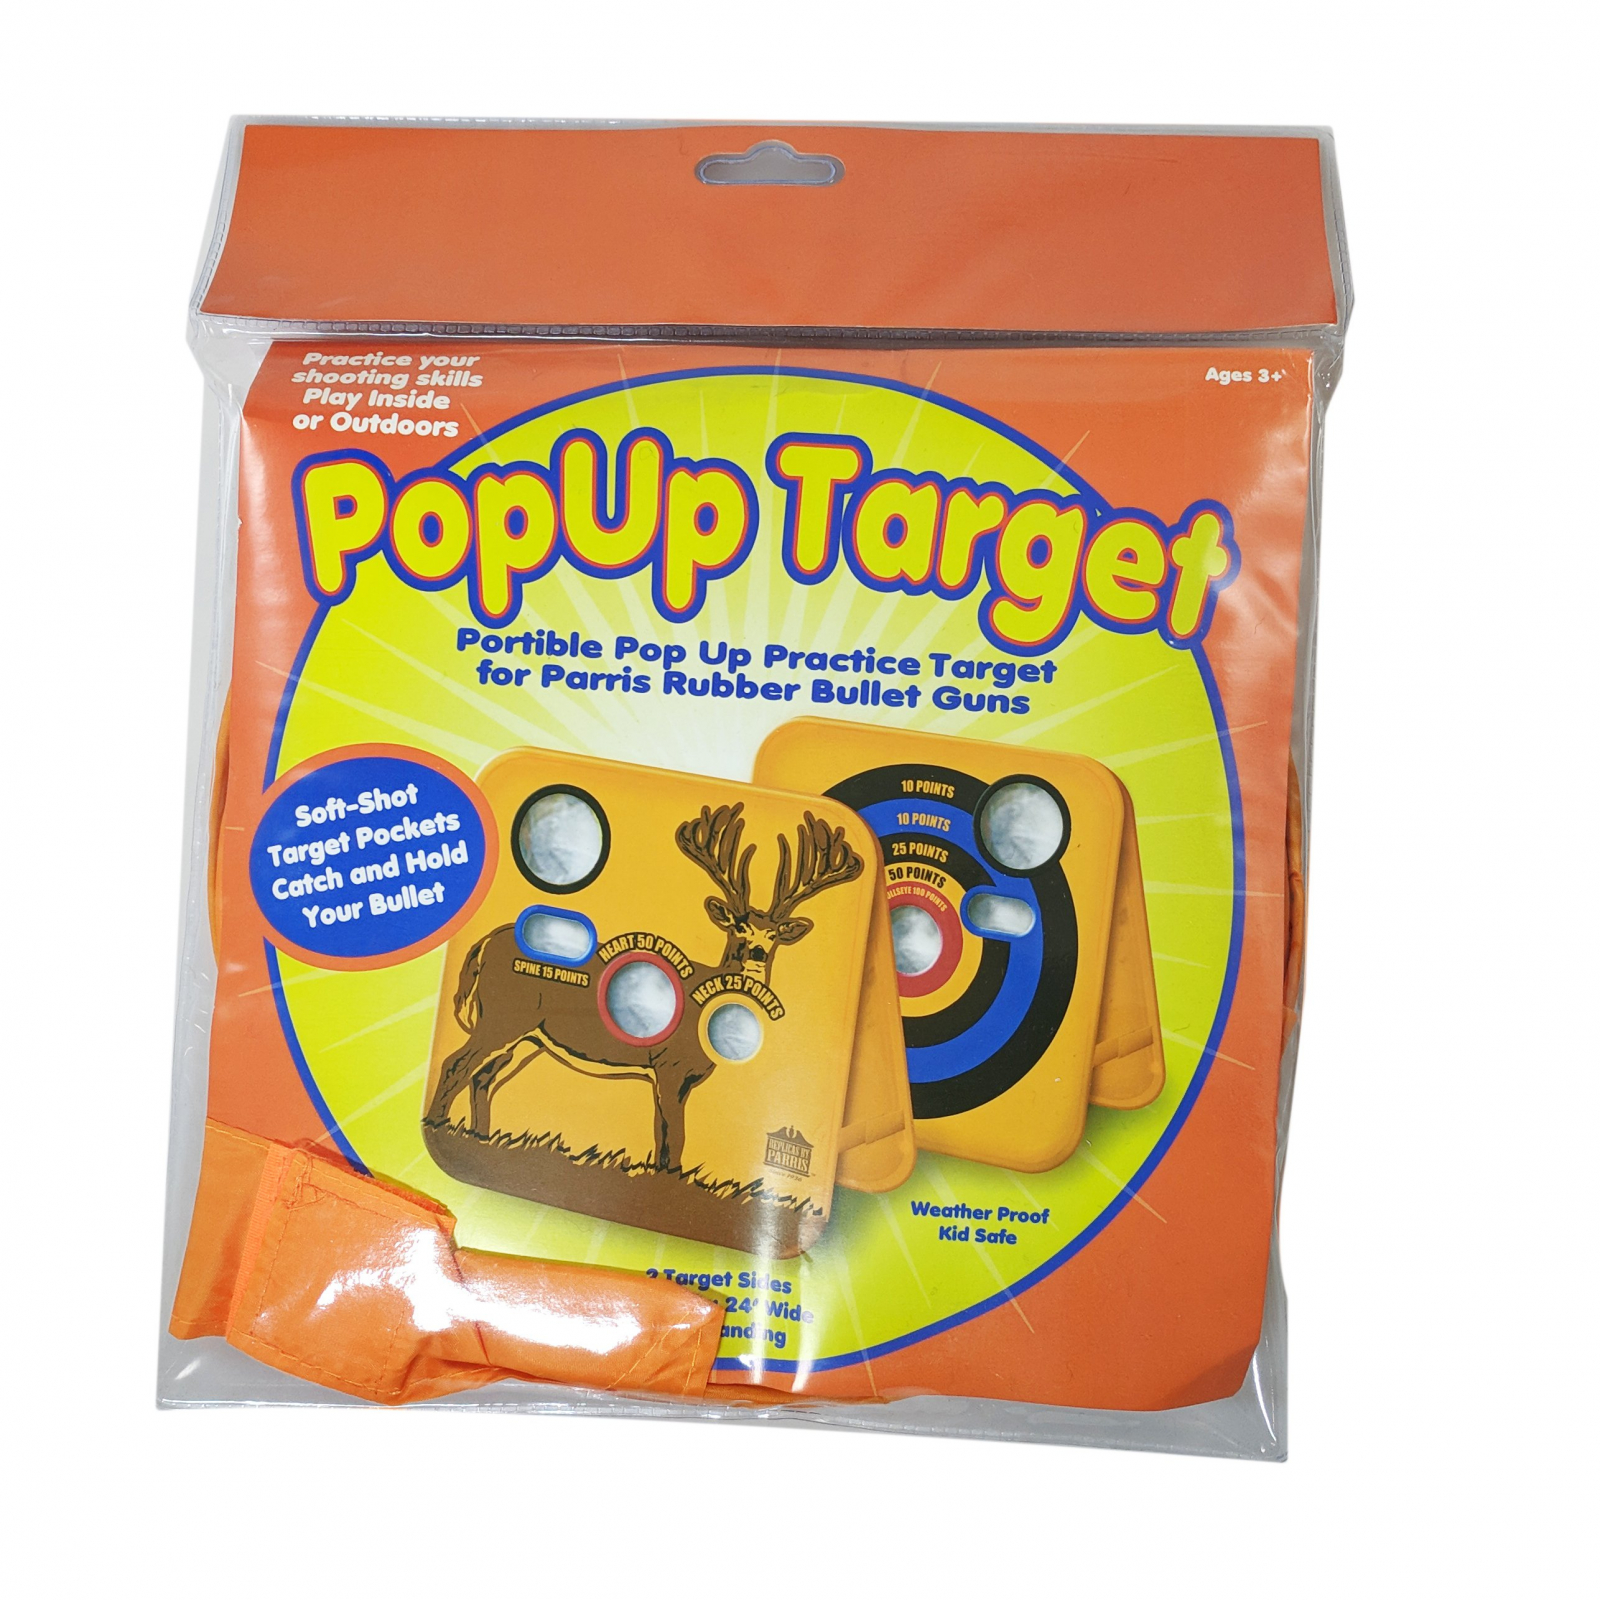 Parris Game Hunter Pop Up Target Pocket with 20pc Ammo